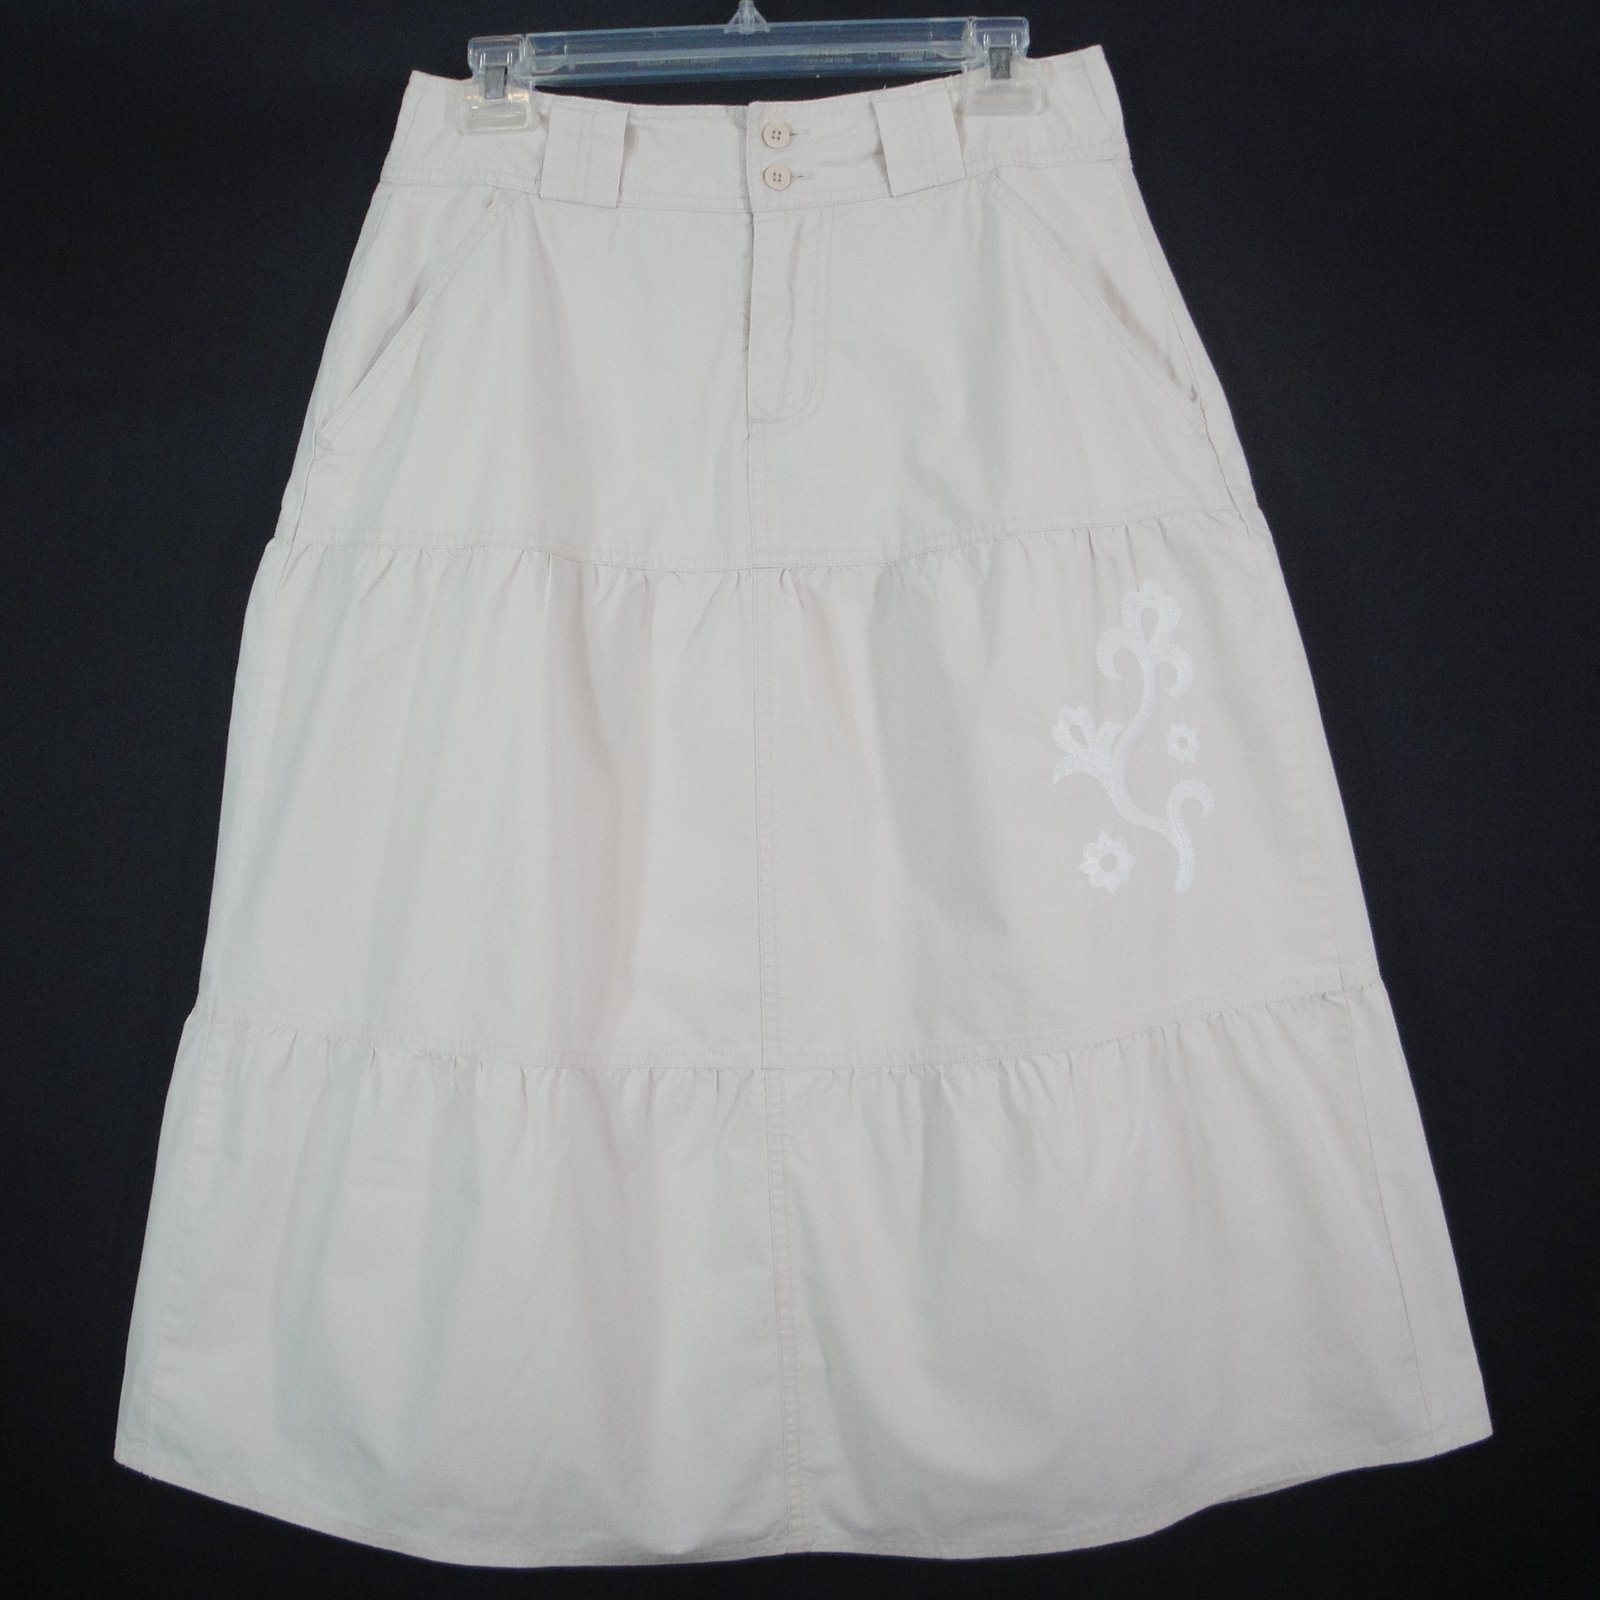 Duck head skirt tiered a line casual lined embroidered off white khaki womens 6 cotton